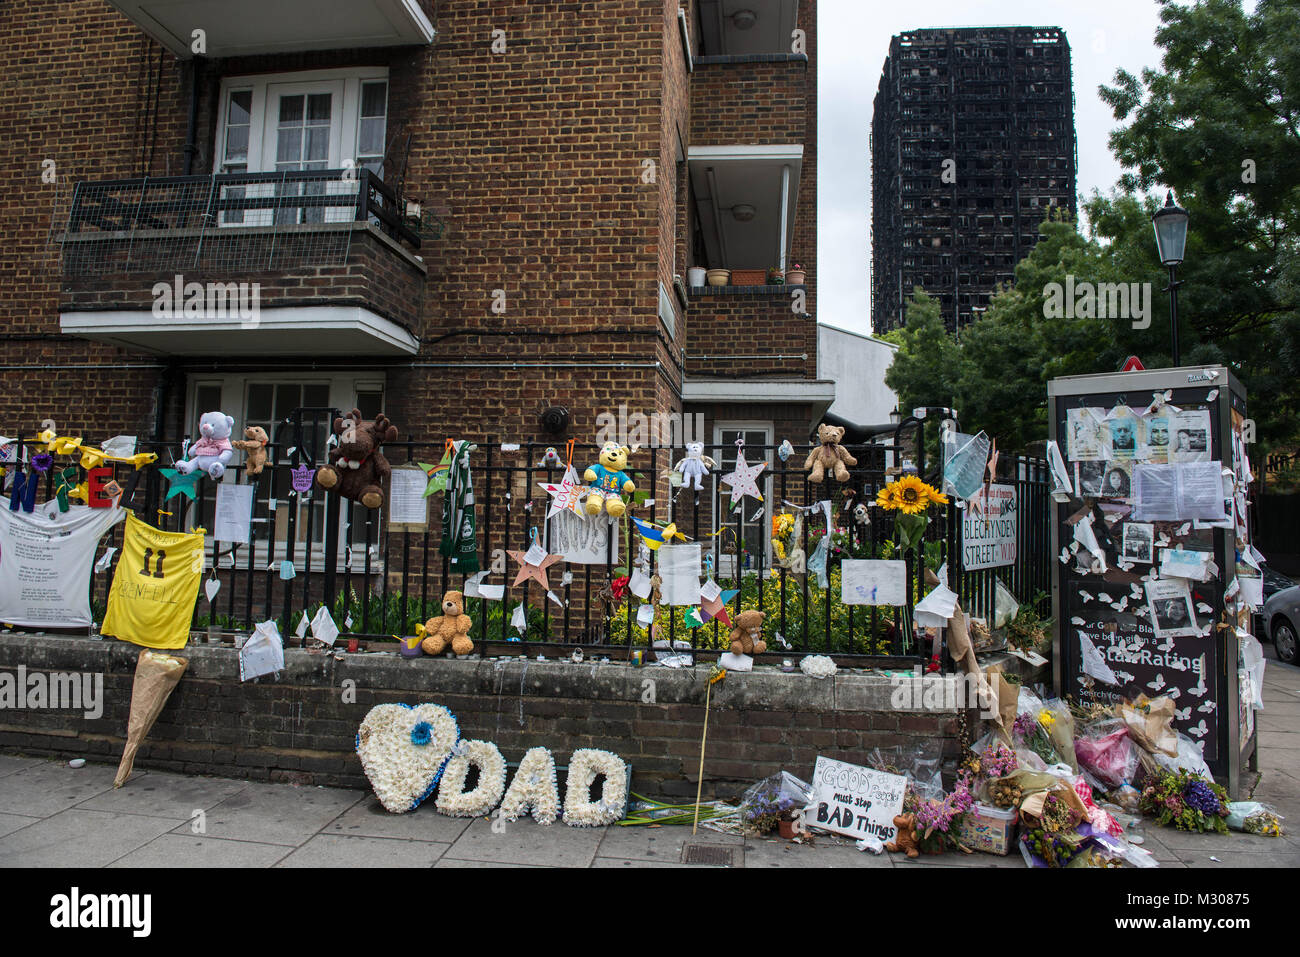 London, United Kingdom. Grenfell Tower victims memorial. - Stock Image